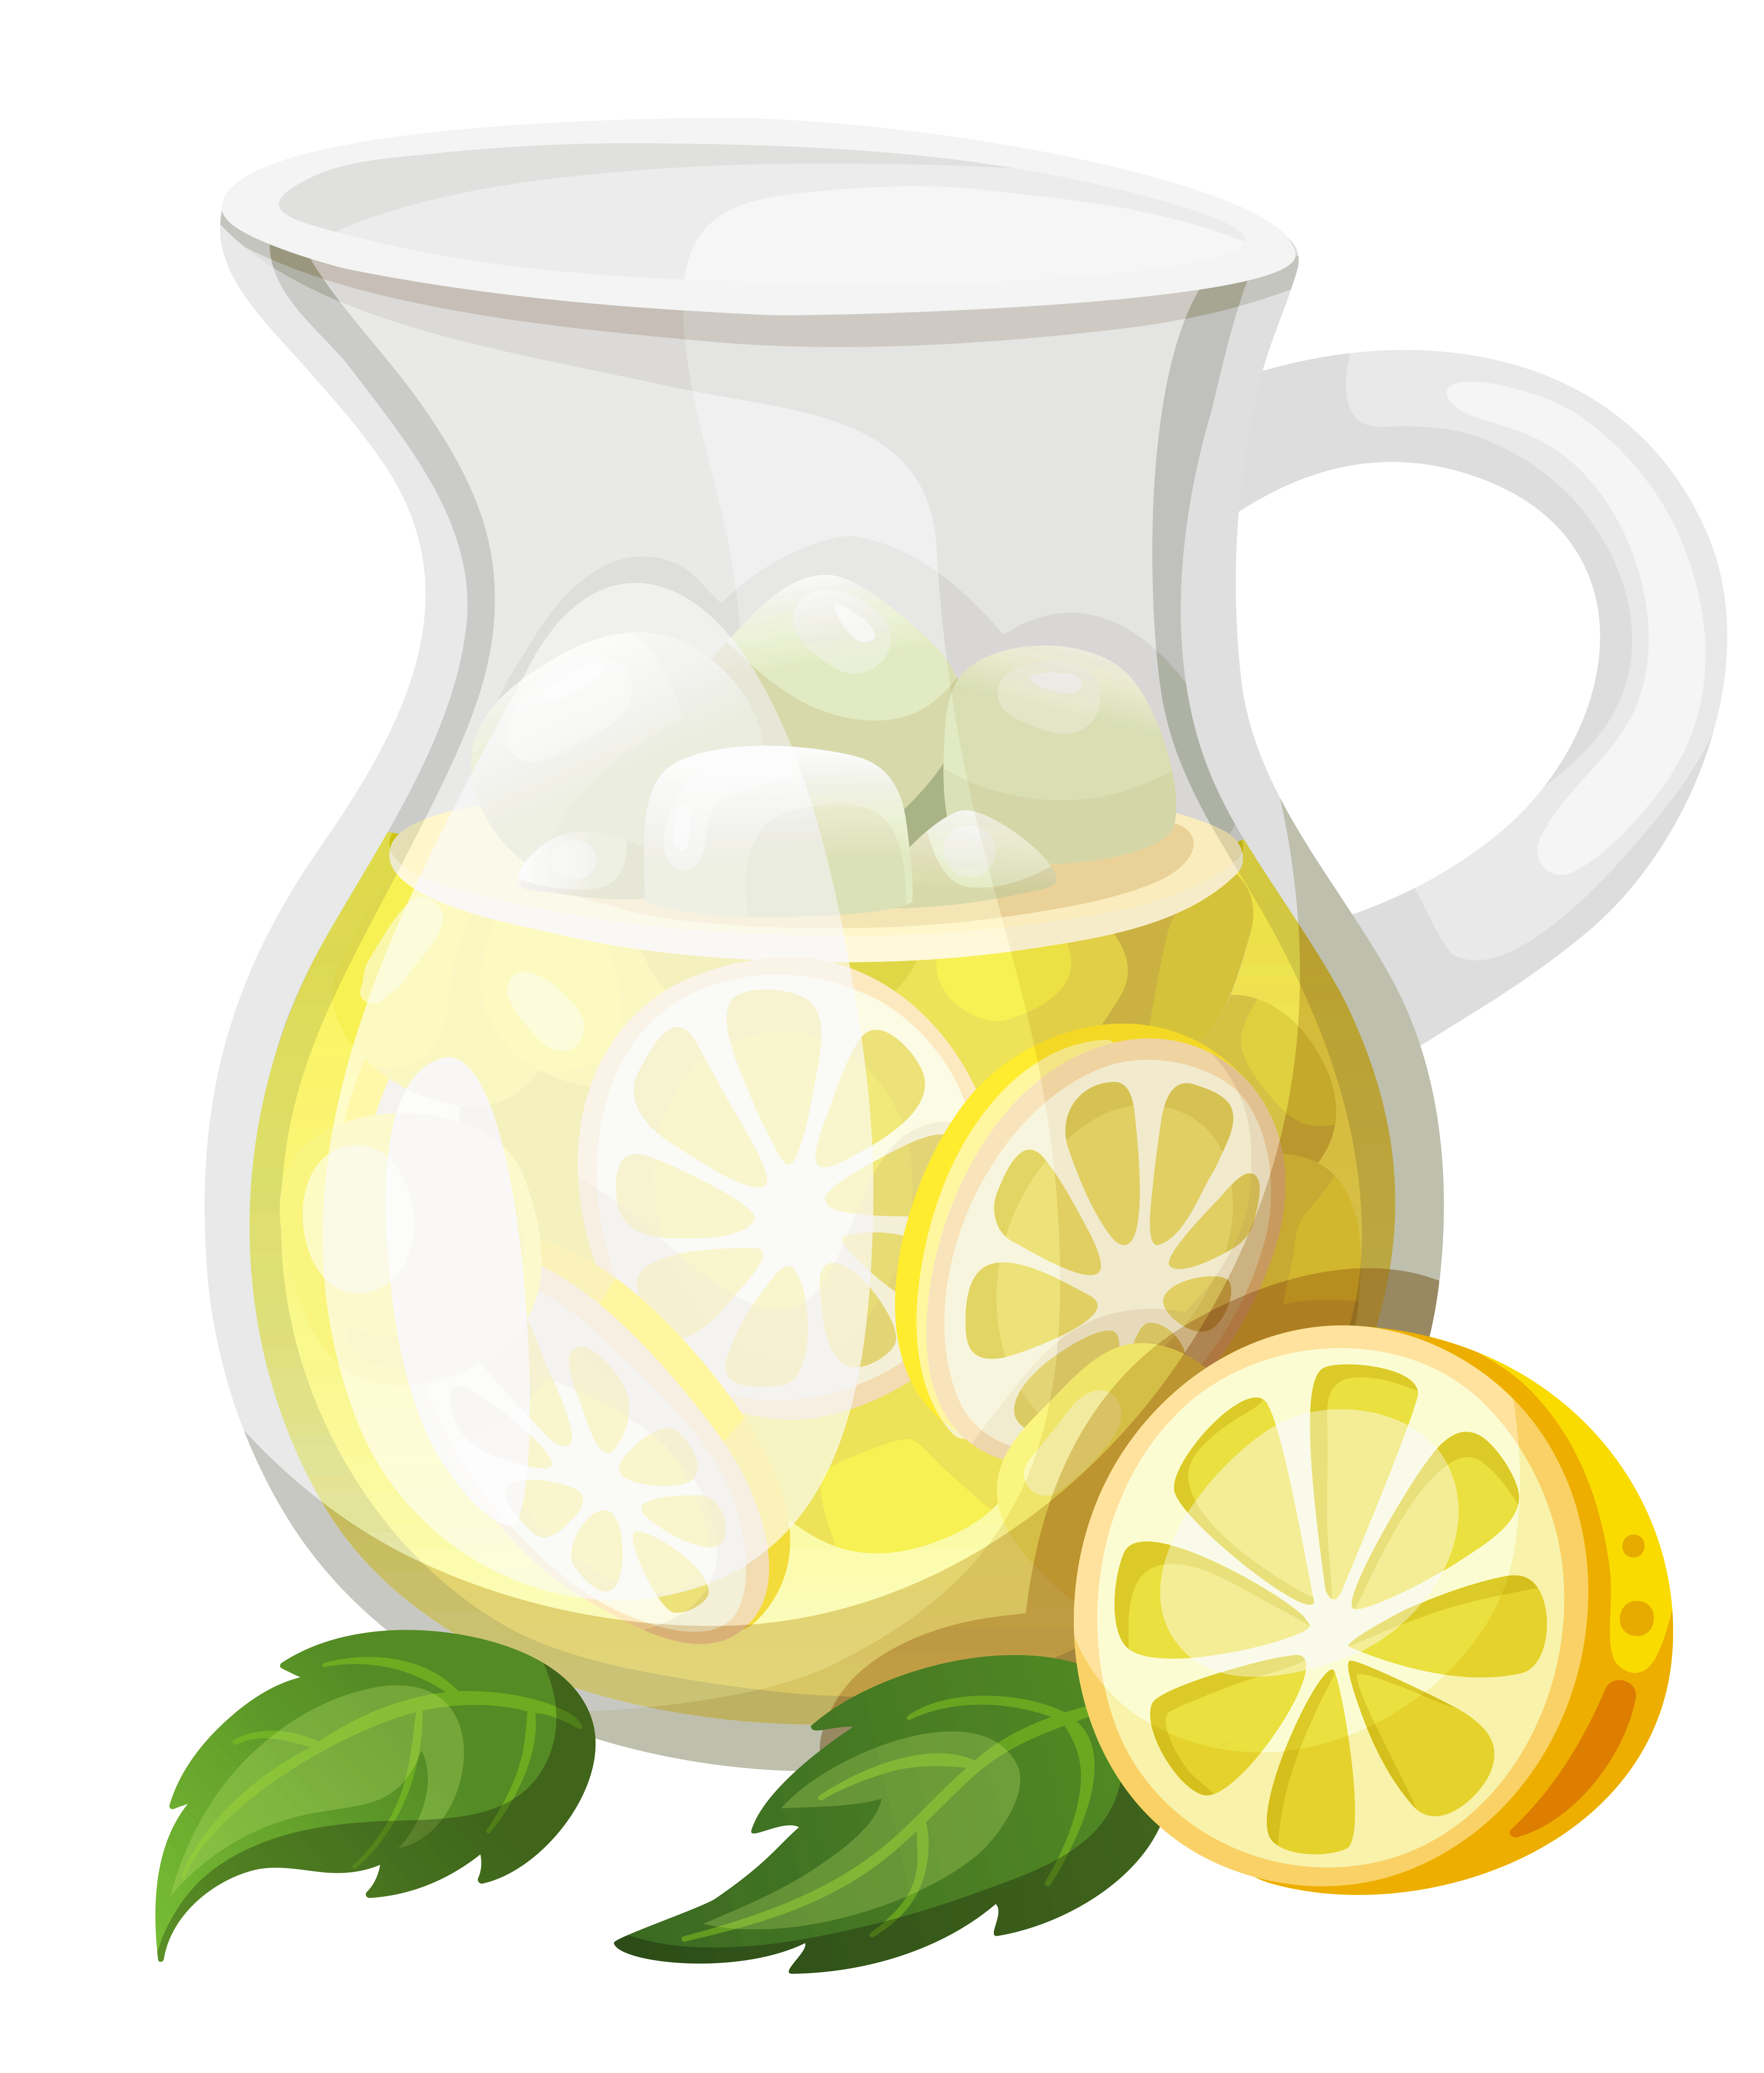 lemonade transparent png